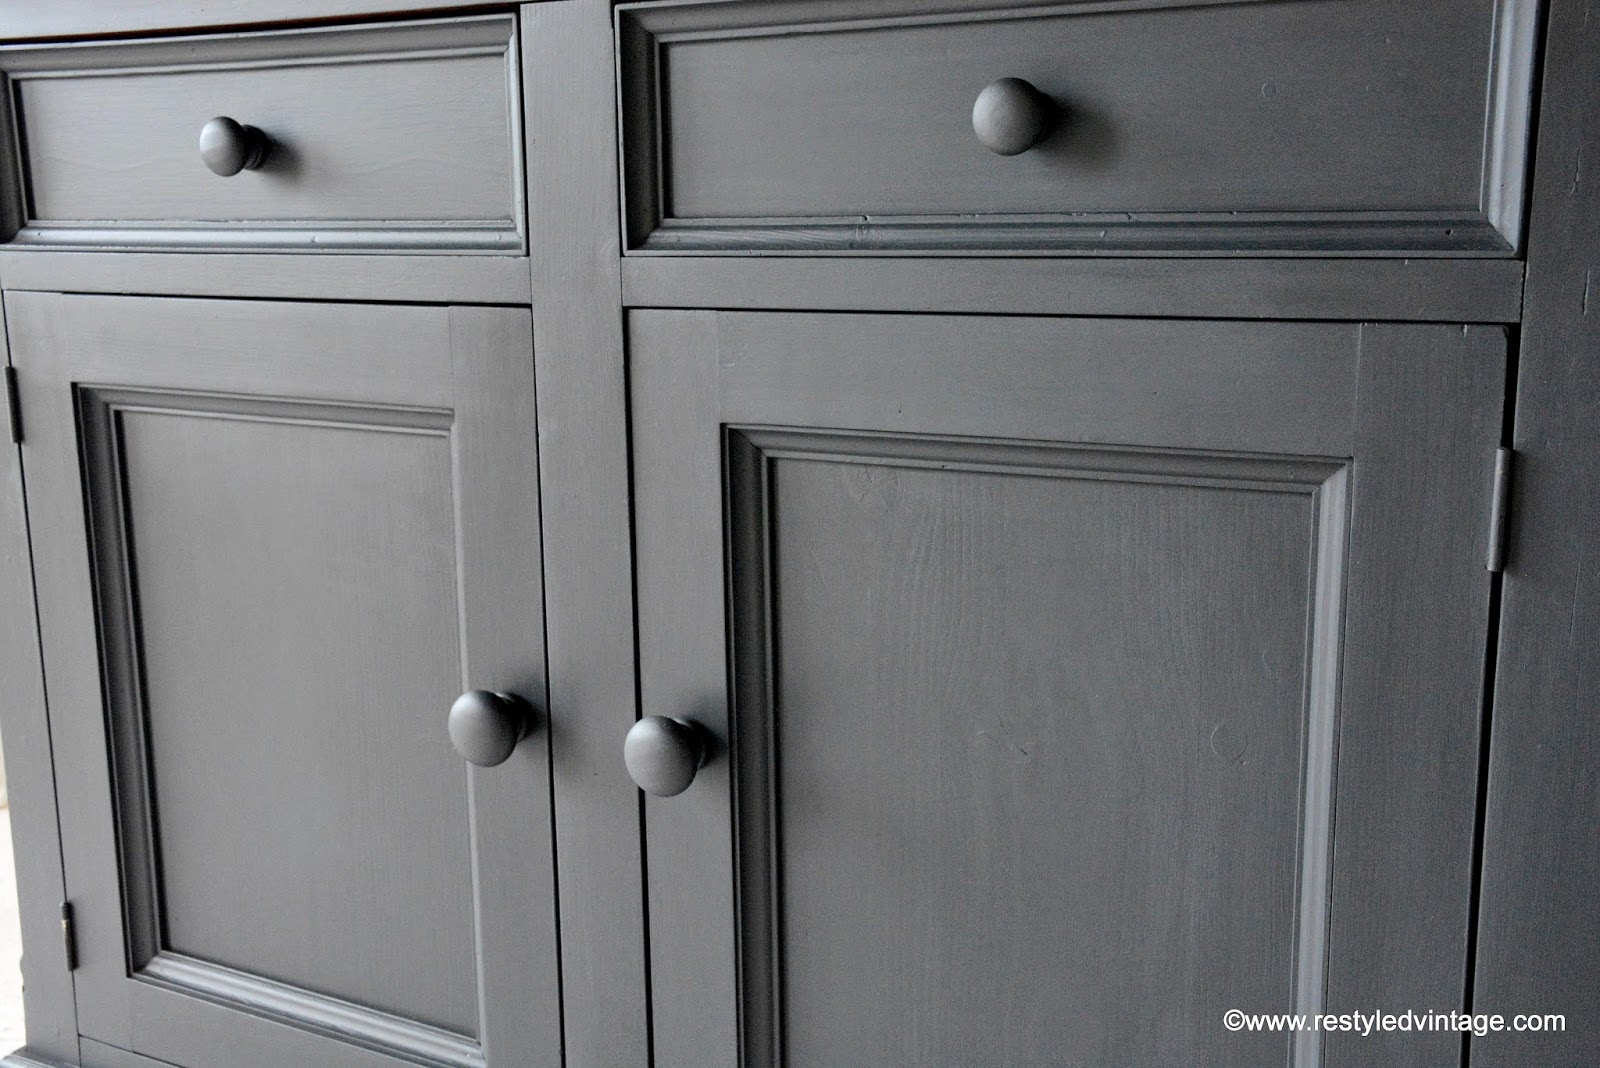 Restyled Vintage: How To Get A Great Waxed Finish On Graphite Annie Sloan Chalk  Painted Furniture